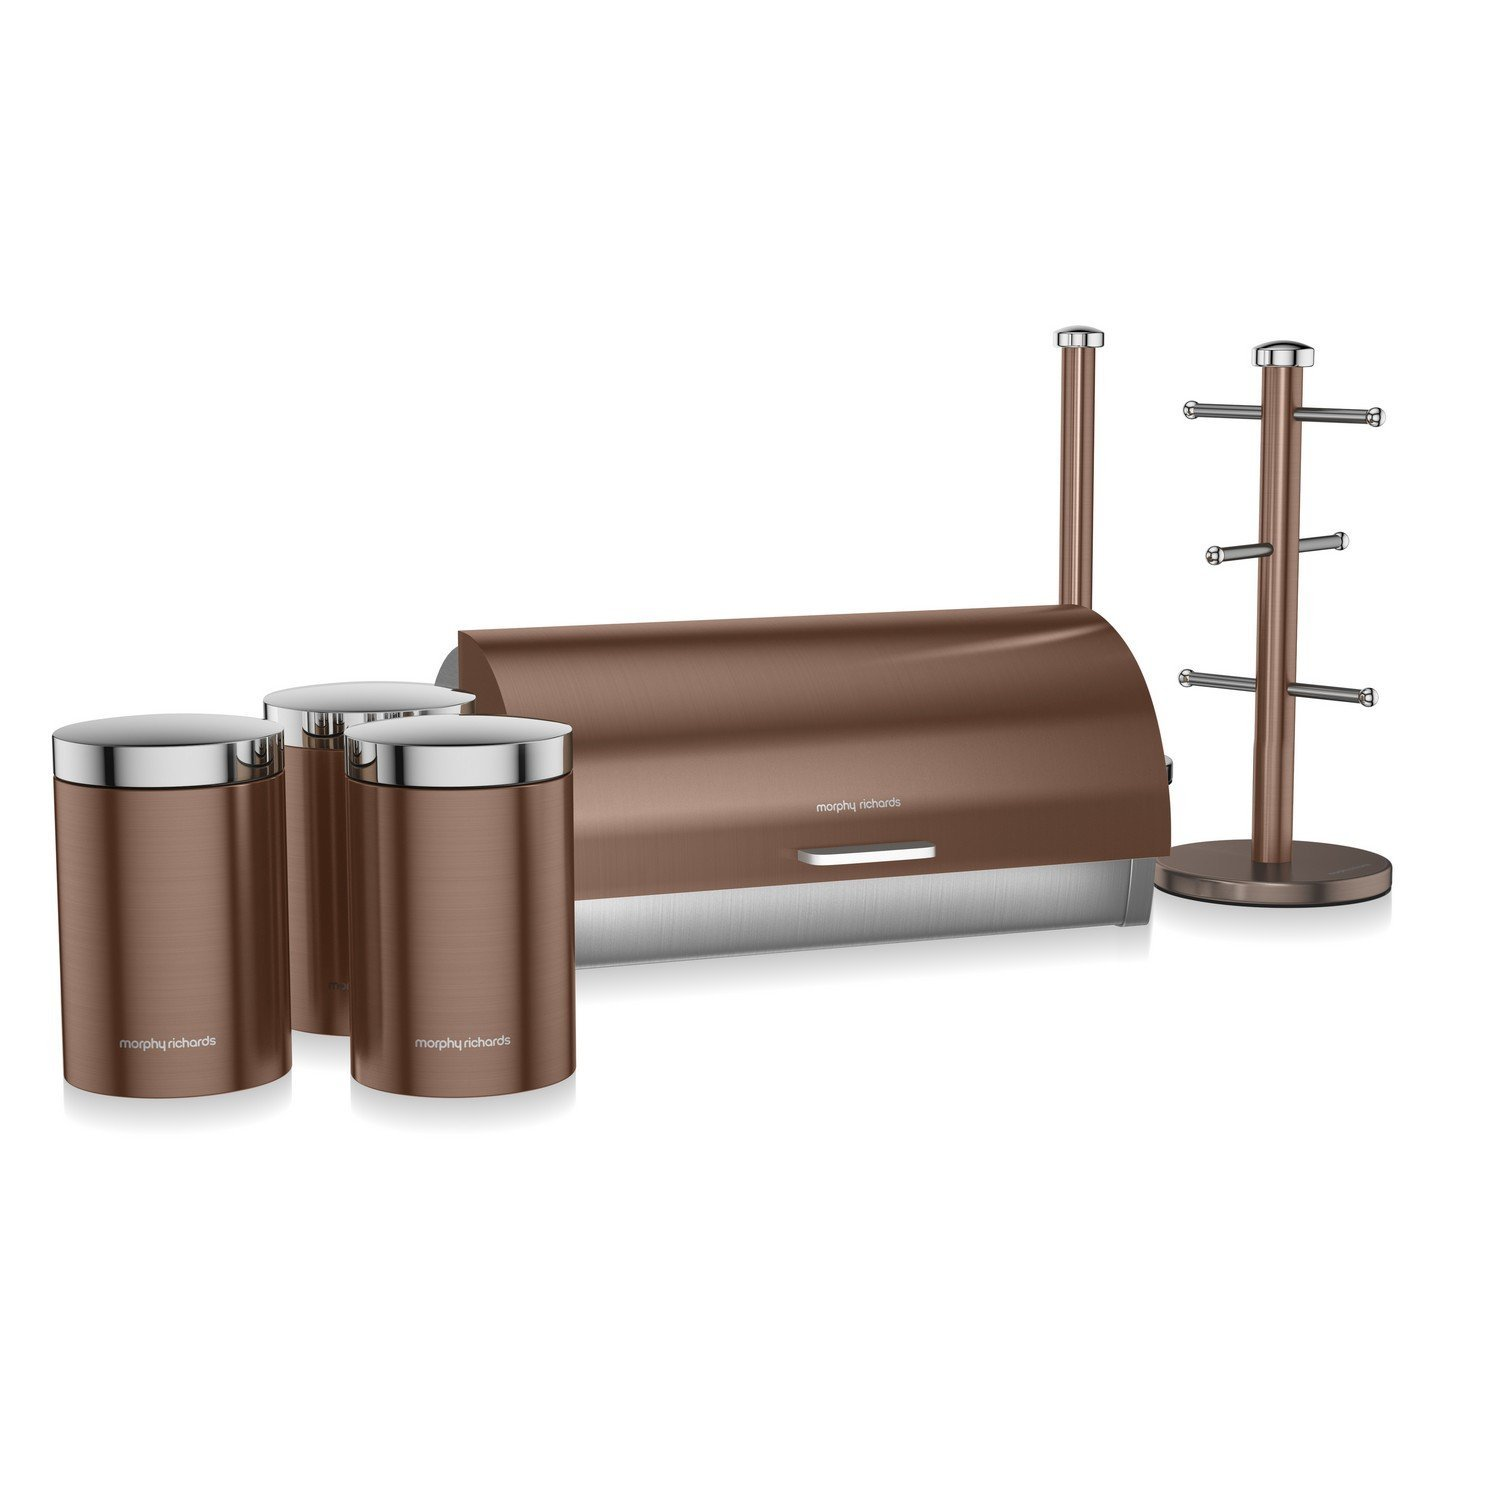 Morphy Richards Accents 6 Piece Storage Set Stainless Steel Copper